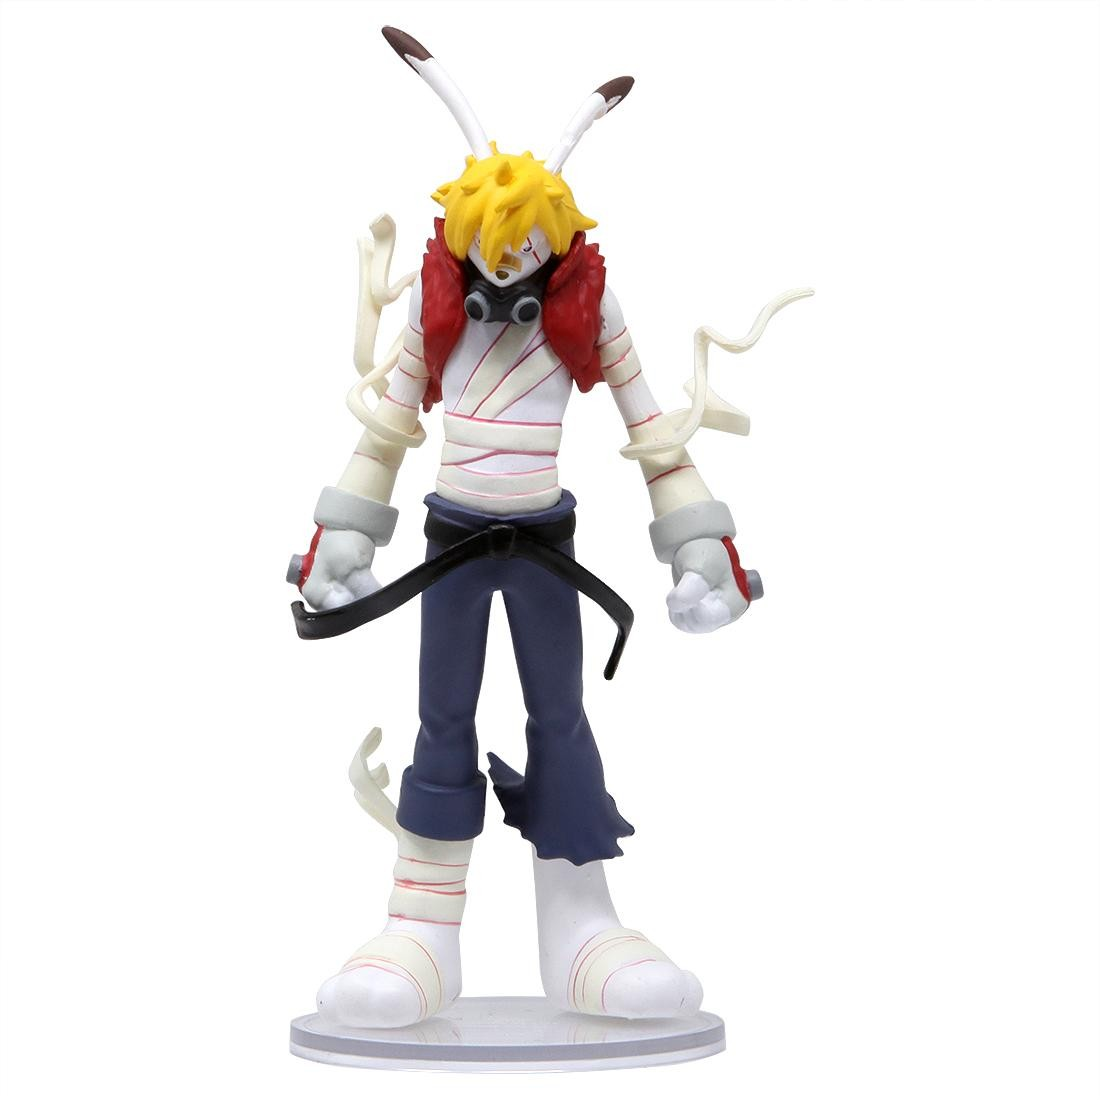 Medicom UDF Studio Chizu Series 2 Summer Wars King Kazma Figure (white)